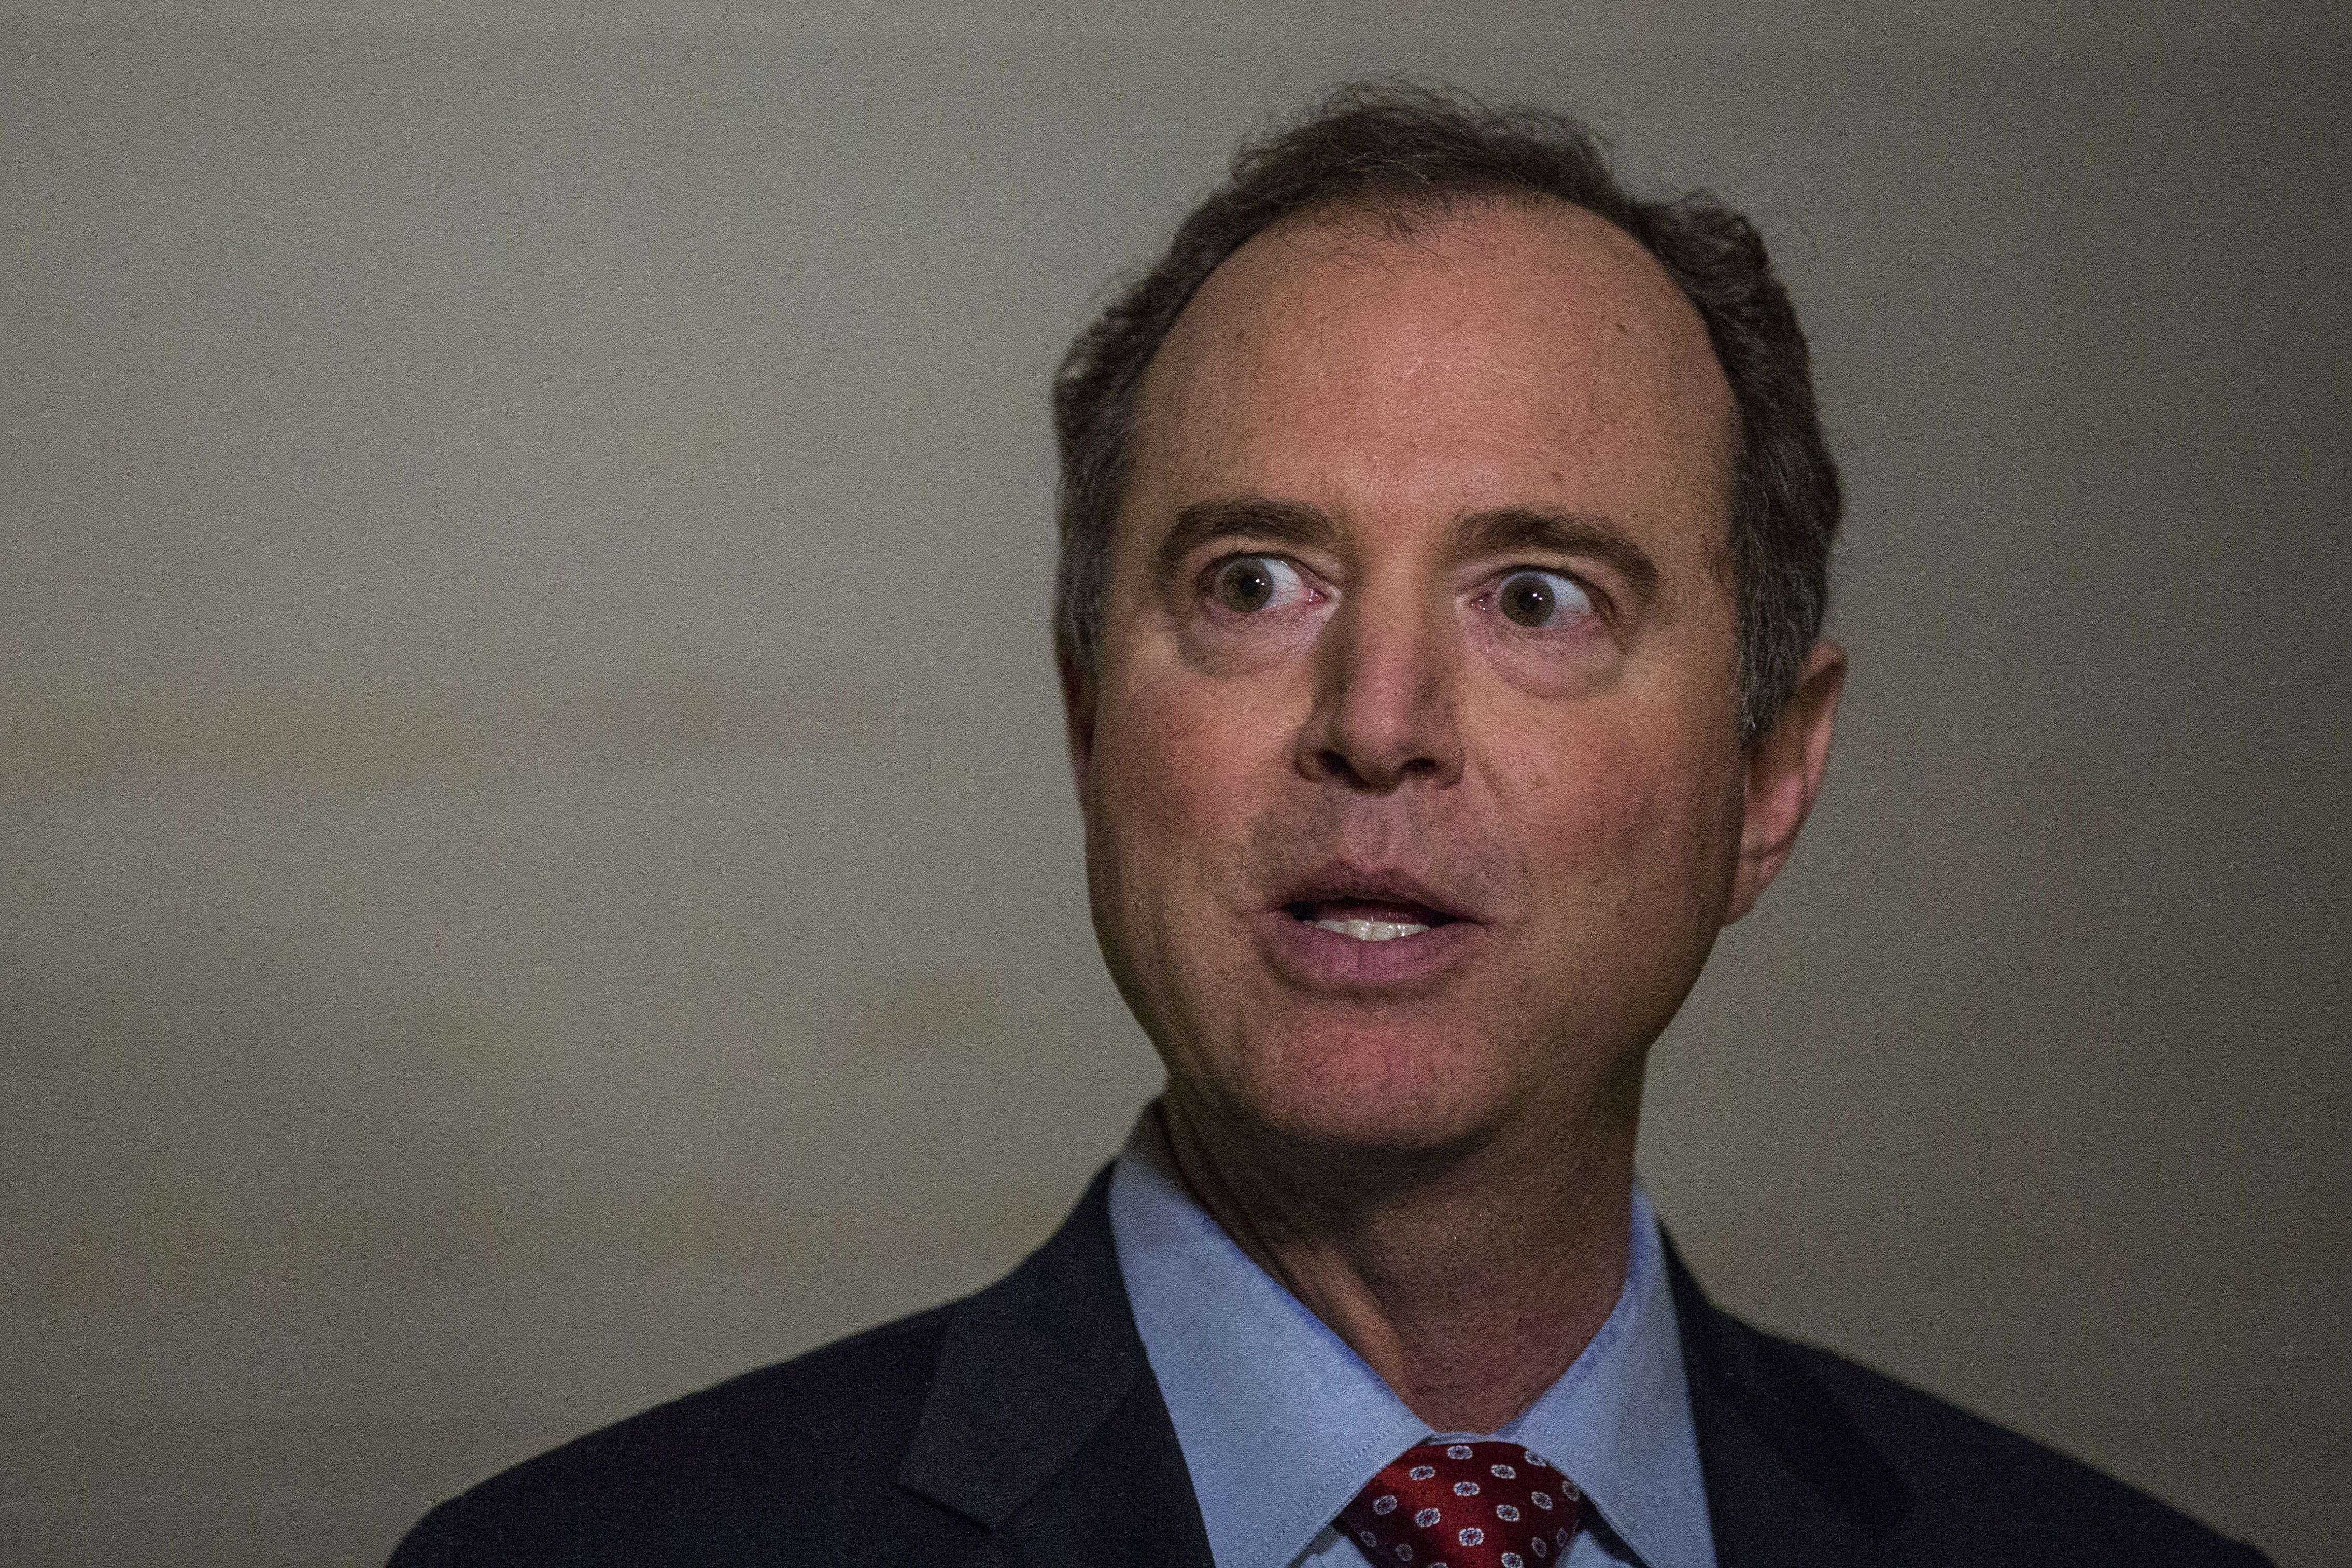 Representative Adam Schiff, a Democrat from California and ranking member of the House Intelligence Committee, speaks with members of the media following testimony by Steve Bannon, former chairman of Breitbart News Network LLC, not pictured, on Capitol Hill in Washington, D.C., U.S., on Tuesday, Jan. 16, 2018. The House Intelligence Committee issued a subpoena Tuesday for testimony by Bannon after his closed-door interview with the panel's Russia probe became entangled in legal disputes over whether the former chief strategist to President Donald Trump could invoke executive privilege. Photographer: Zach Gibson/Bloomberg via Getty Images